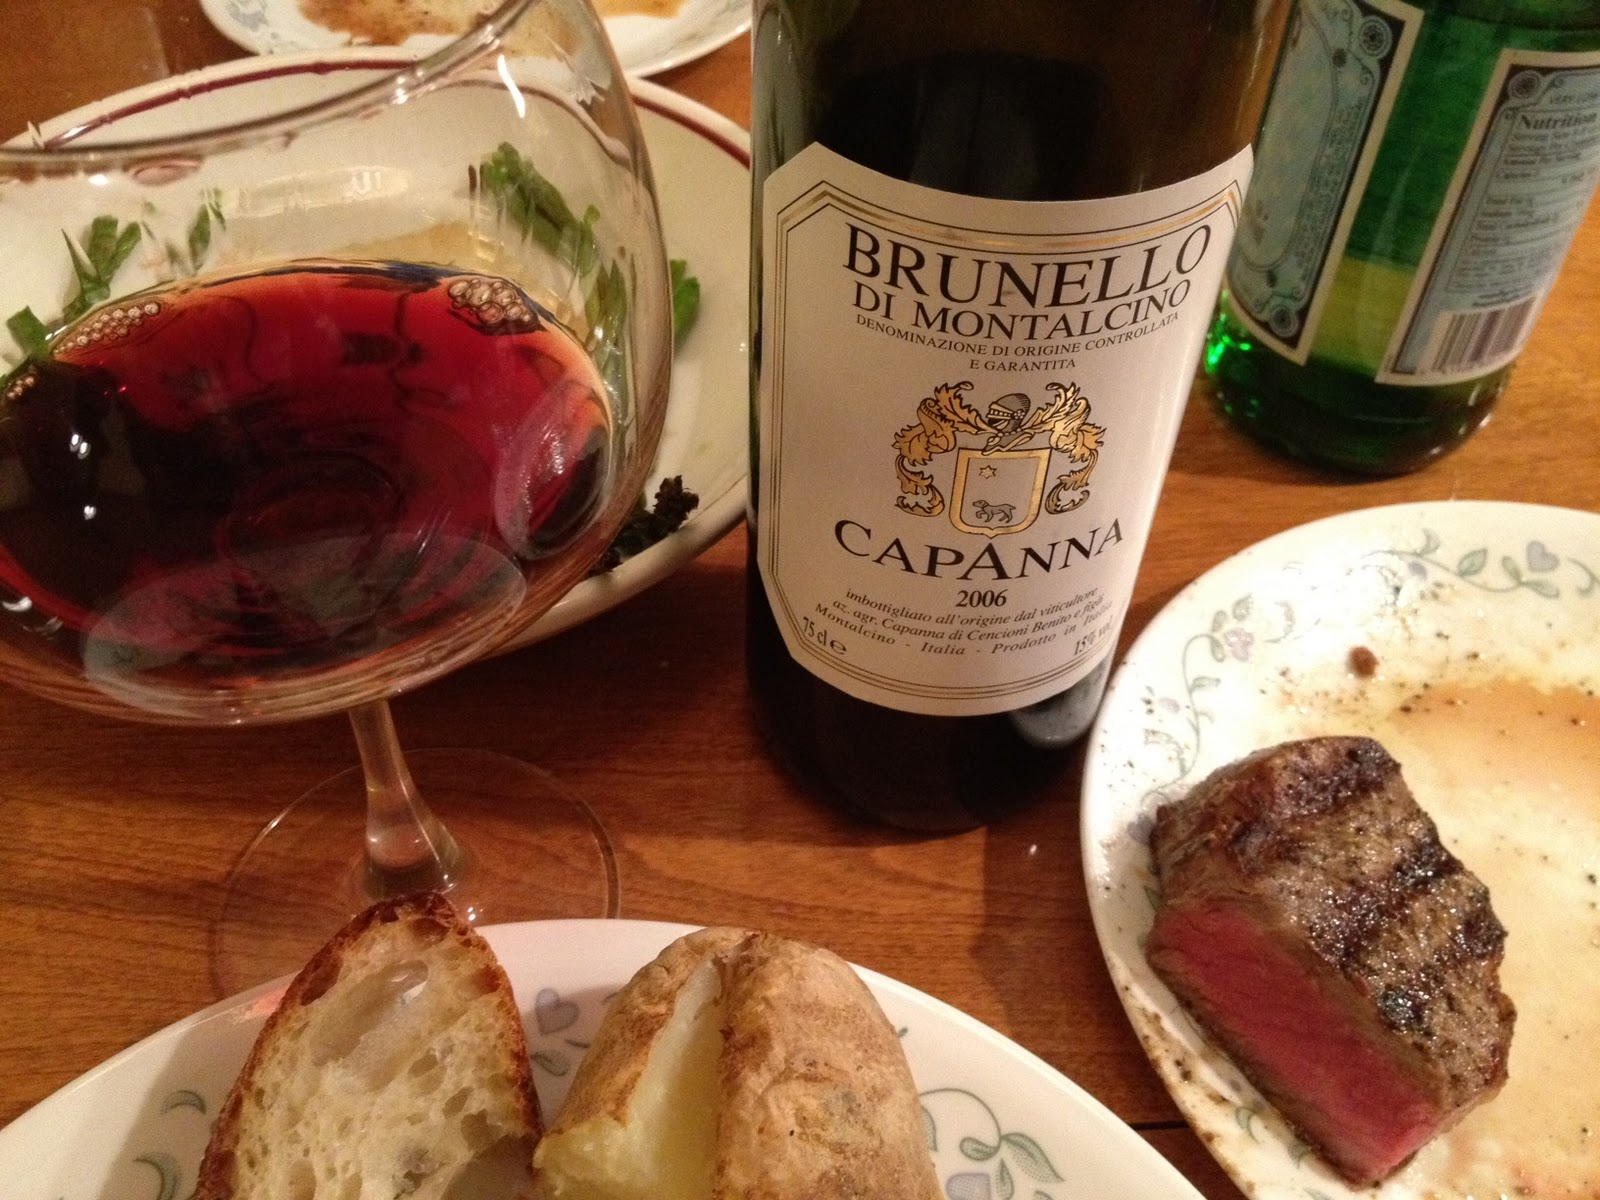 Bar+Capanna+Brunello